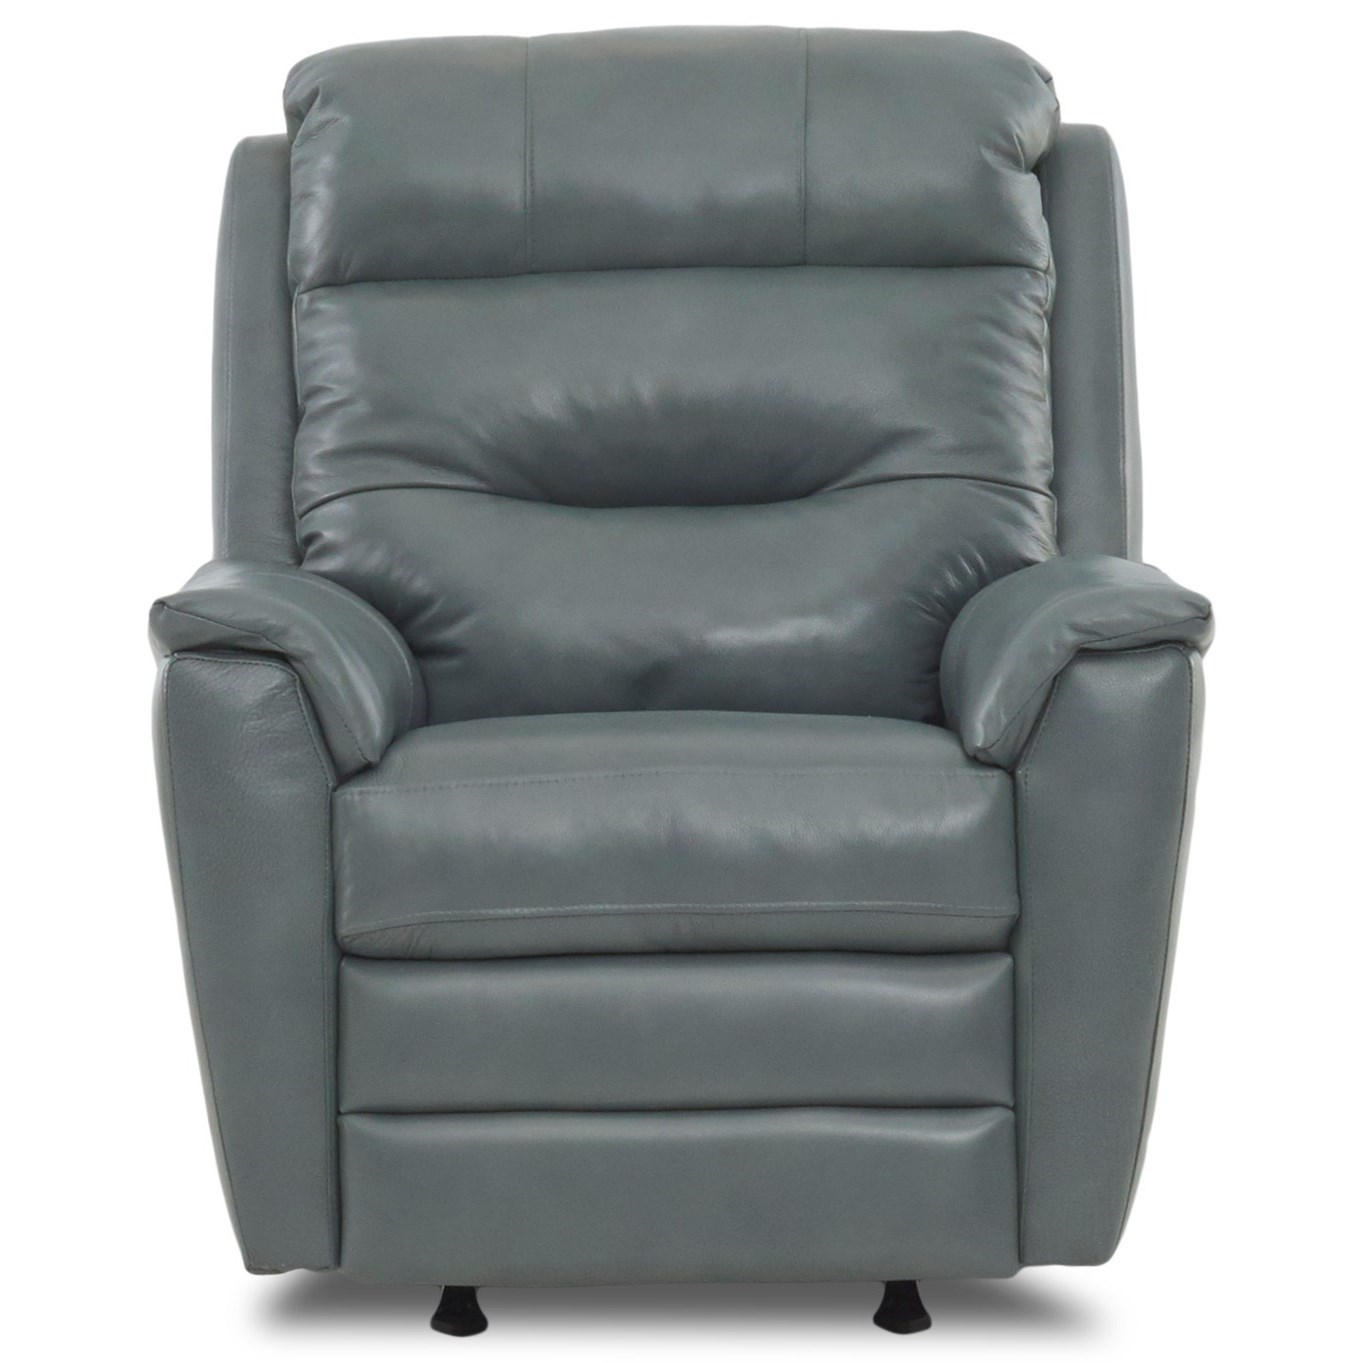 Nola Power Recliner with Power Headrest by Klaussner at Adcock Furniture